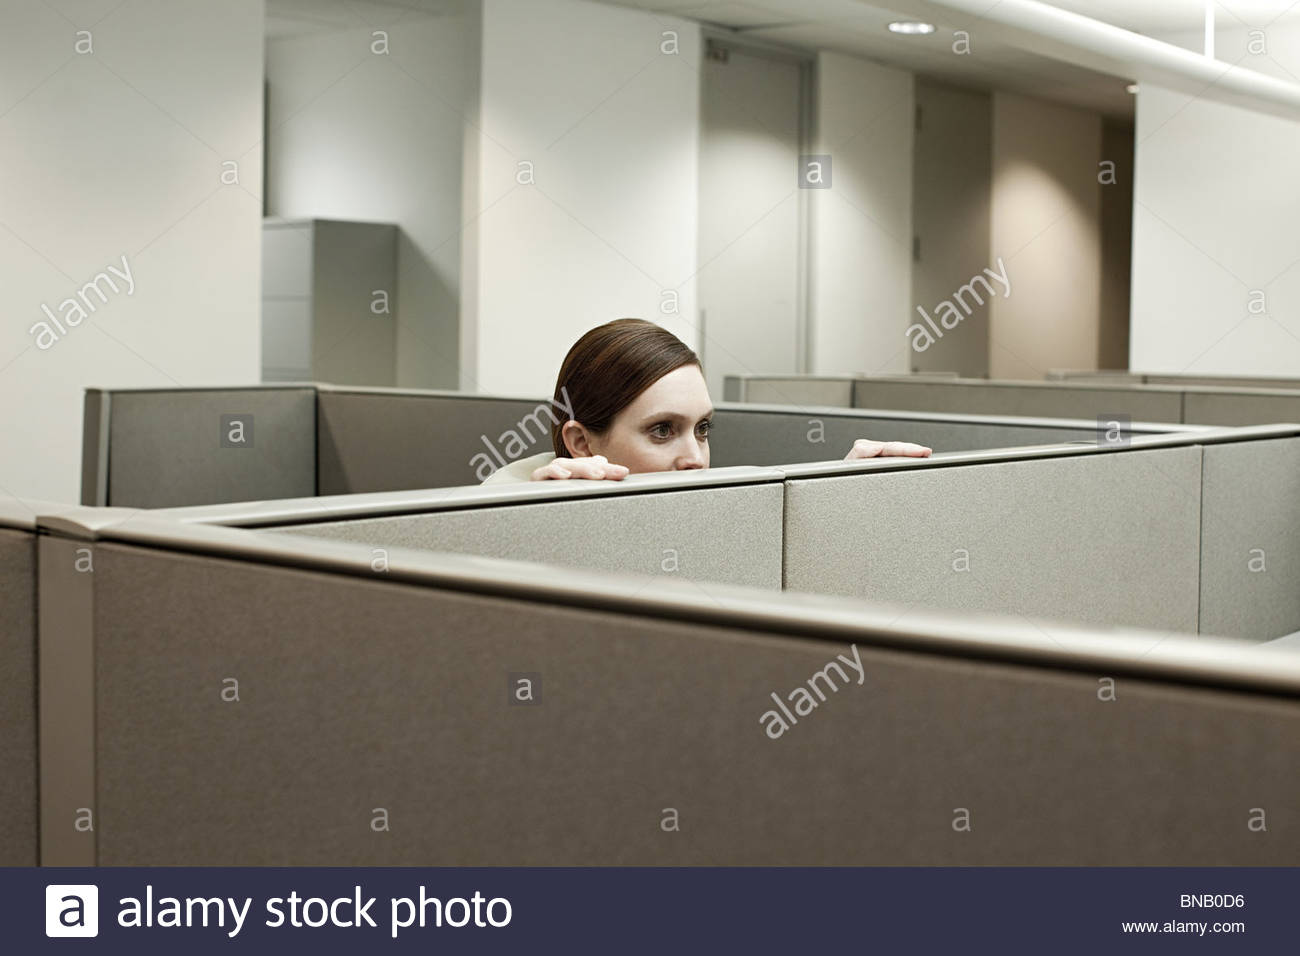 Woman hiding behind cubicle in office - Stock Image